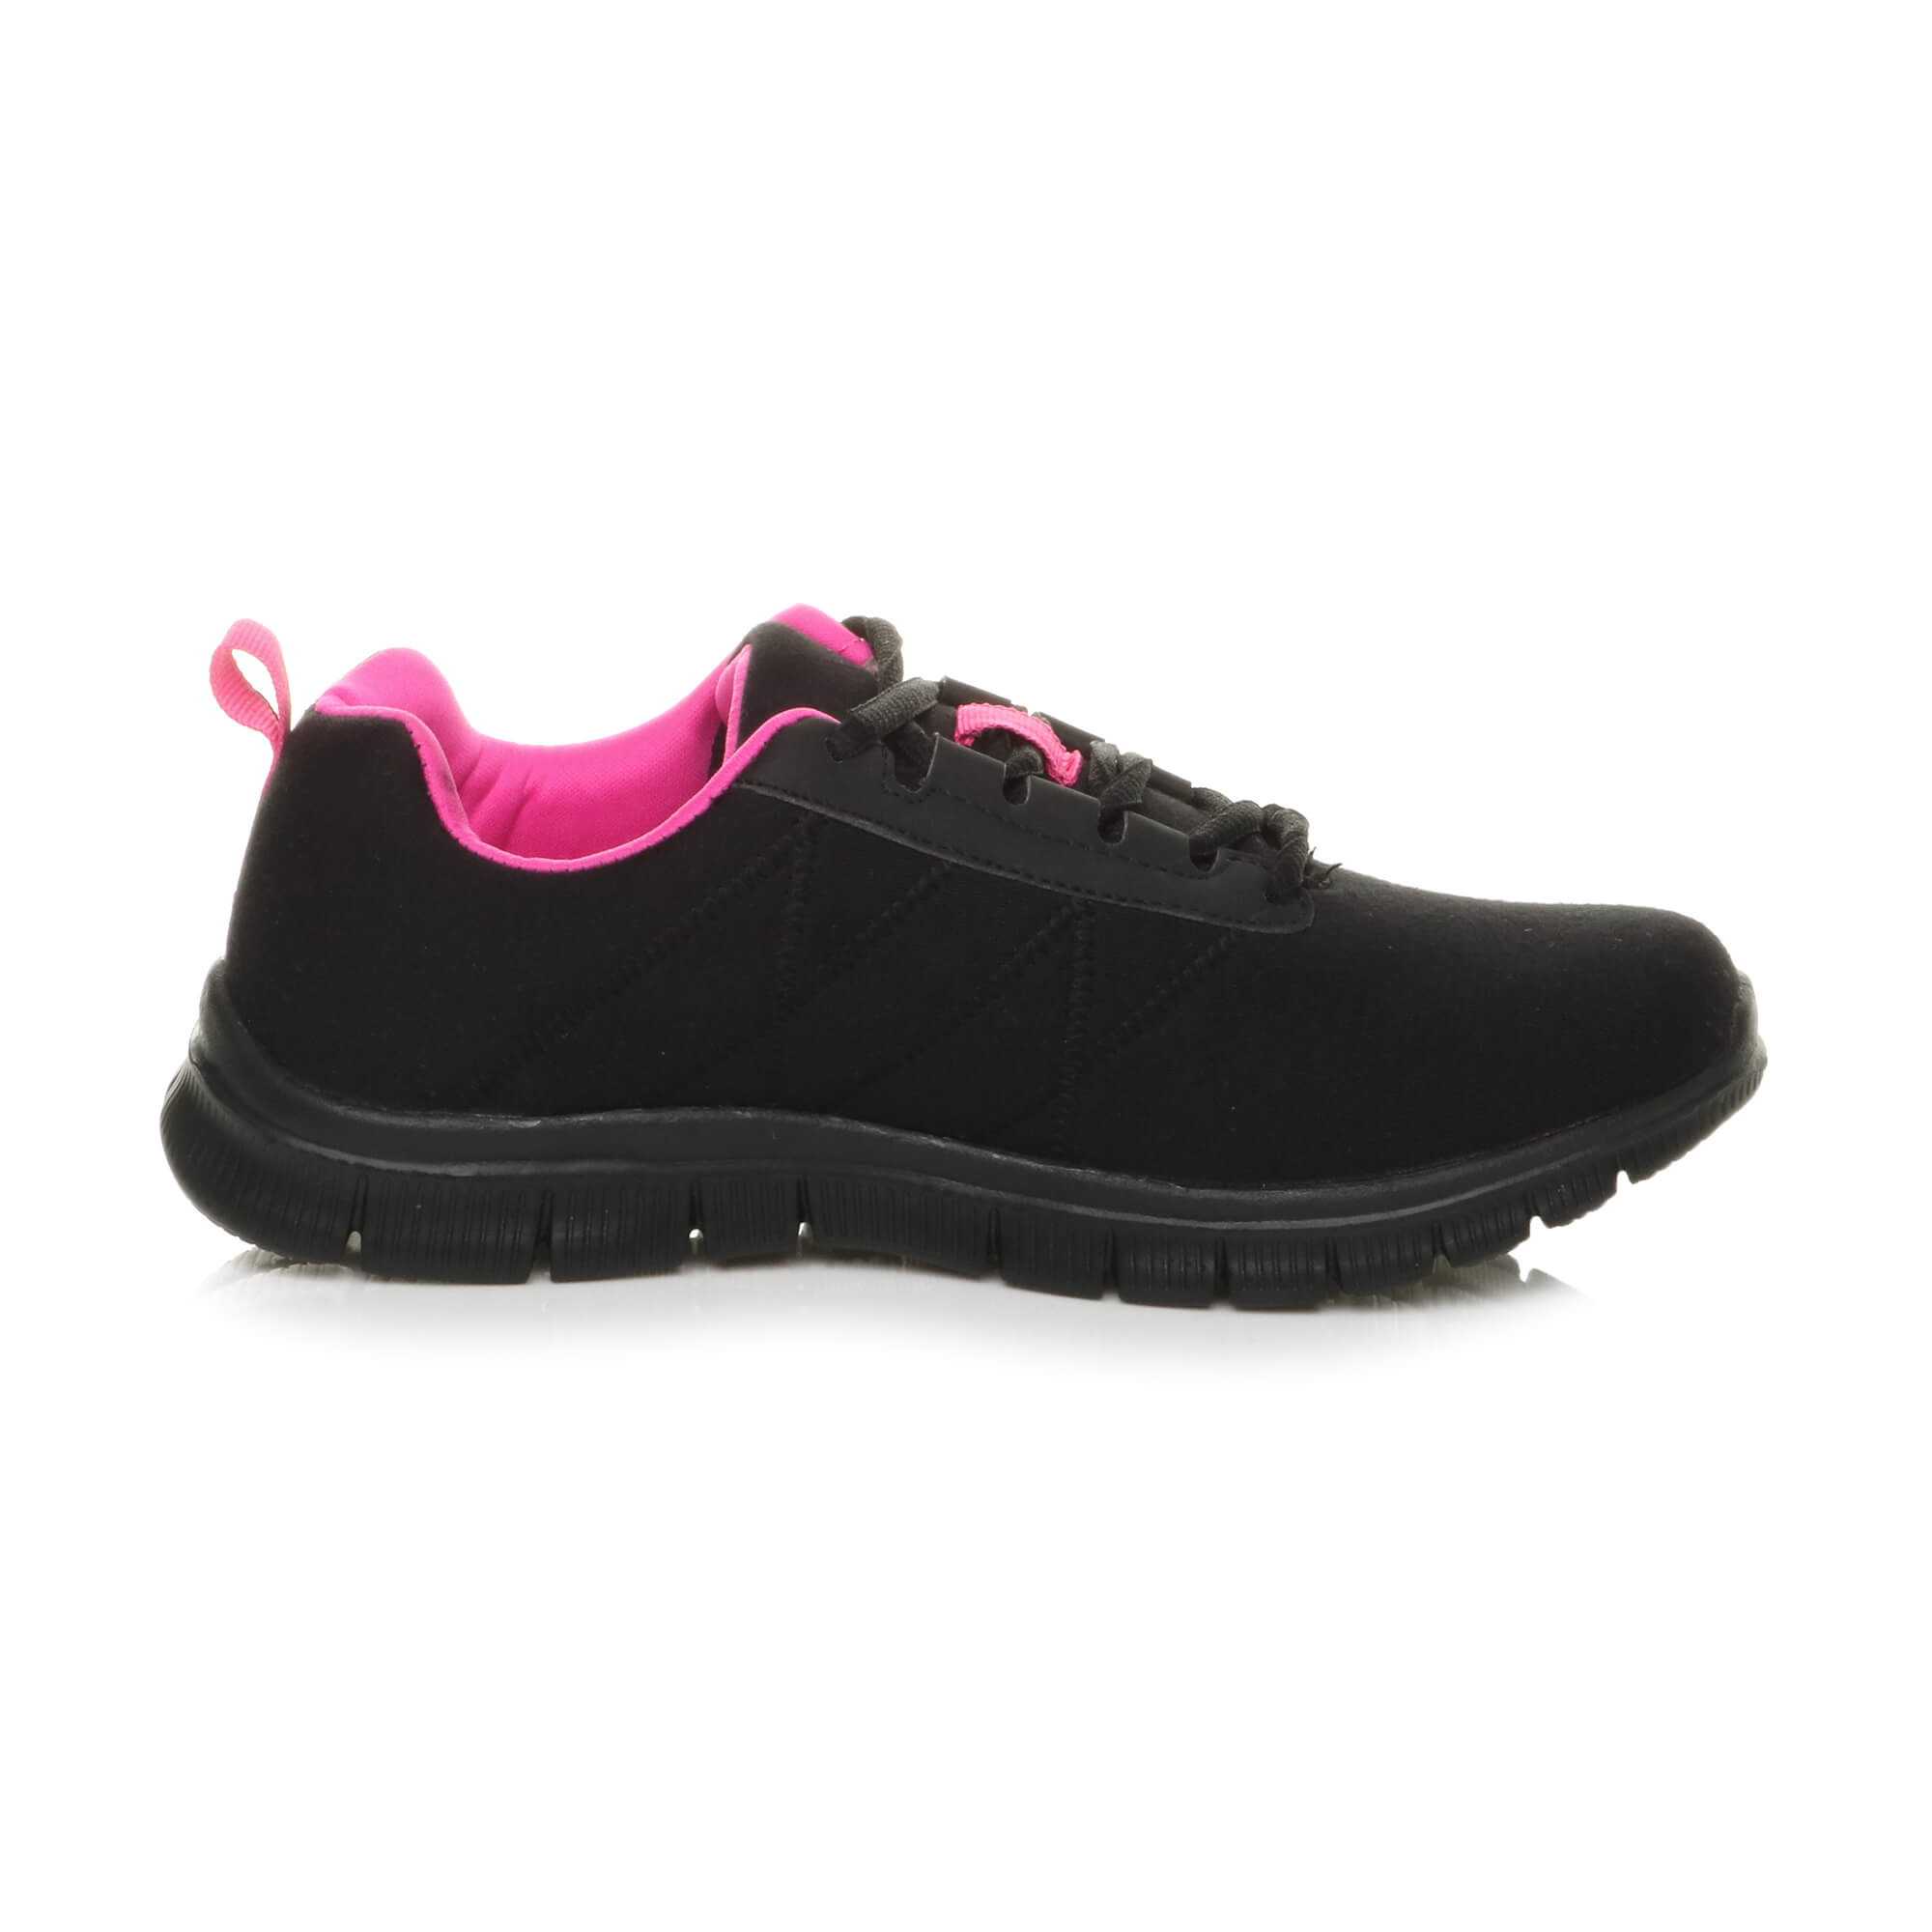 Womens-ladies-comfort-memory-foam-lace-up-trainers-activewear-sneakers-gym-shoes thumbnail 4